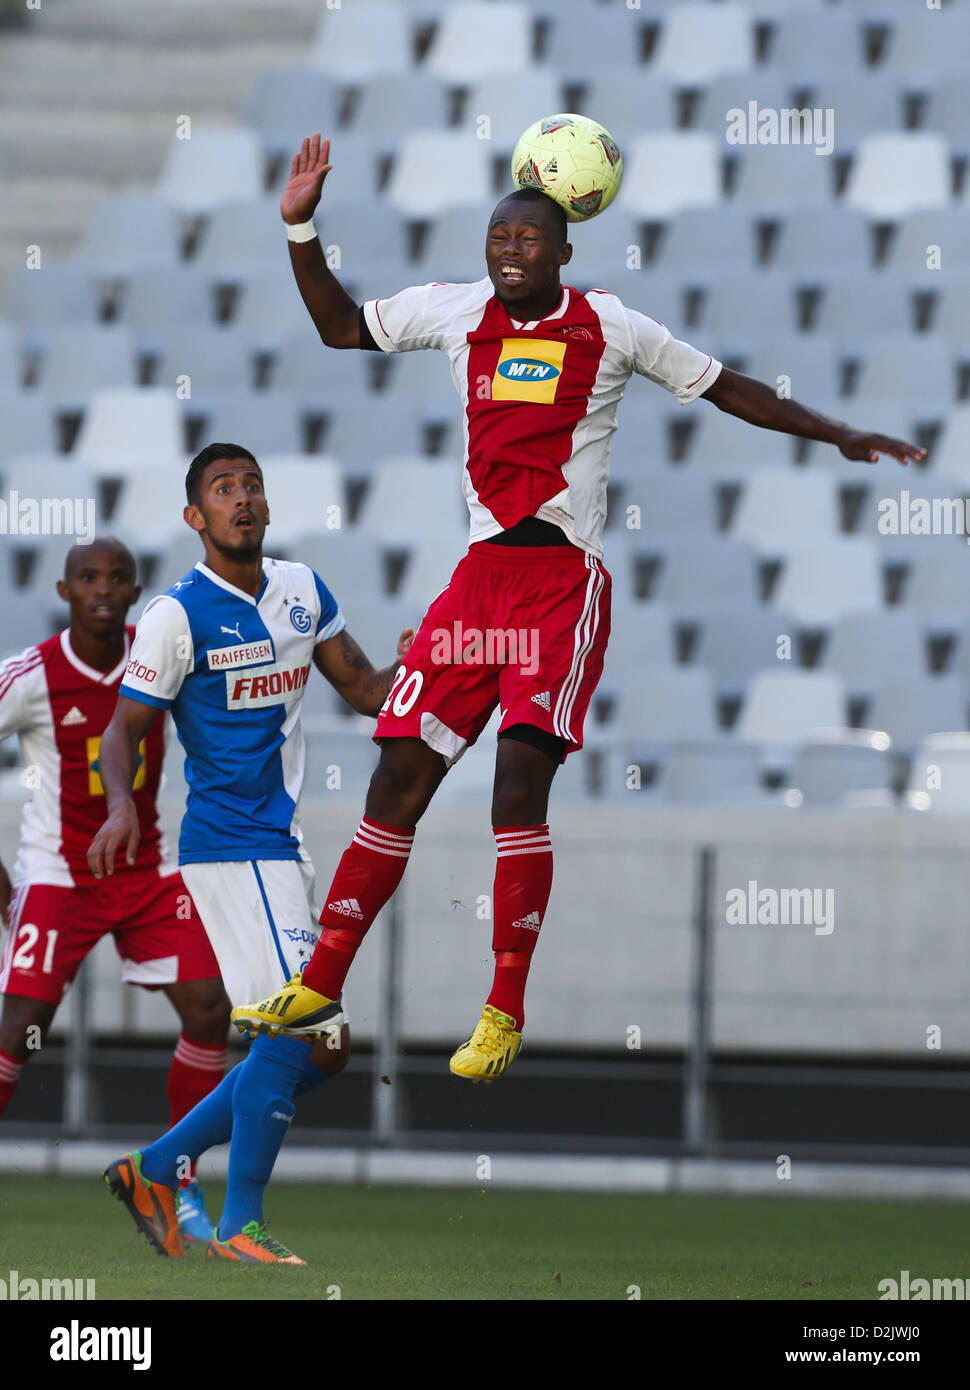 CAPE TOWN, South Africa - Saturday 26 January 2013, Thato Mokeke of Ajax Cape Town heads the ball during the soccer/football - Stock Image